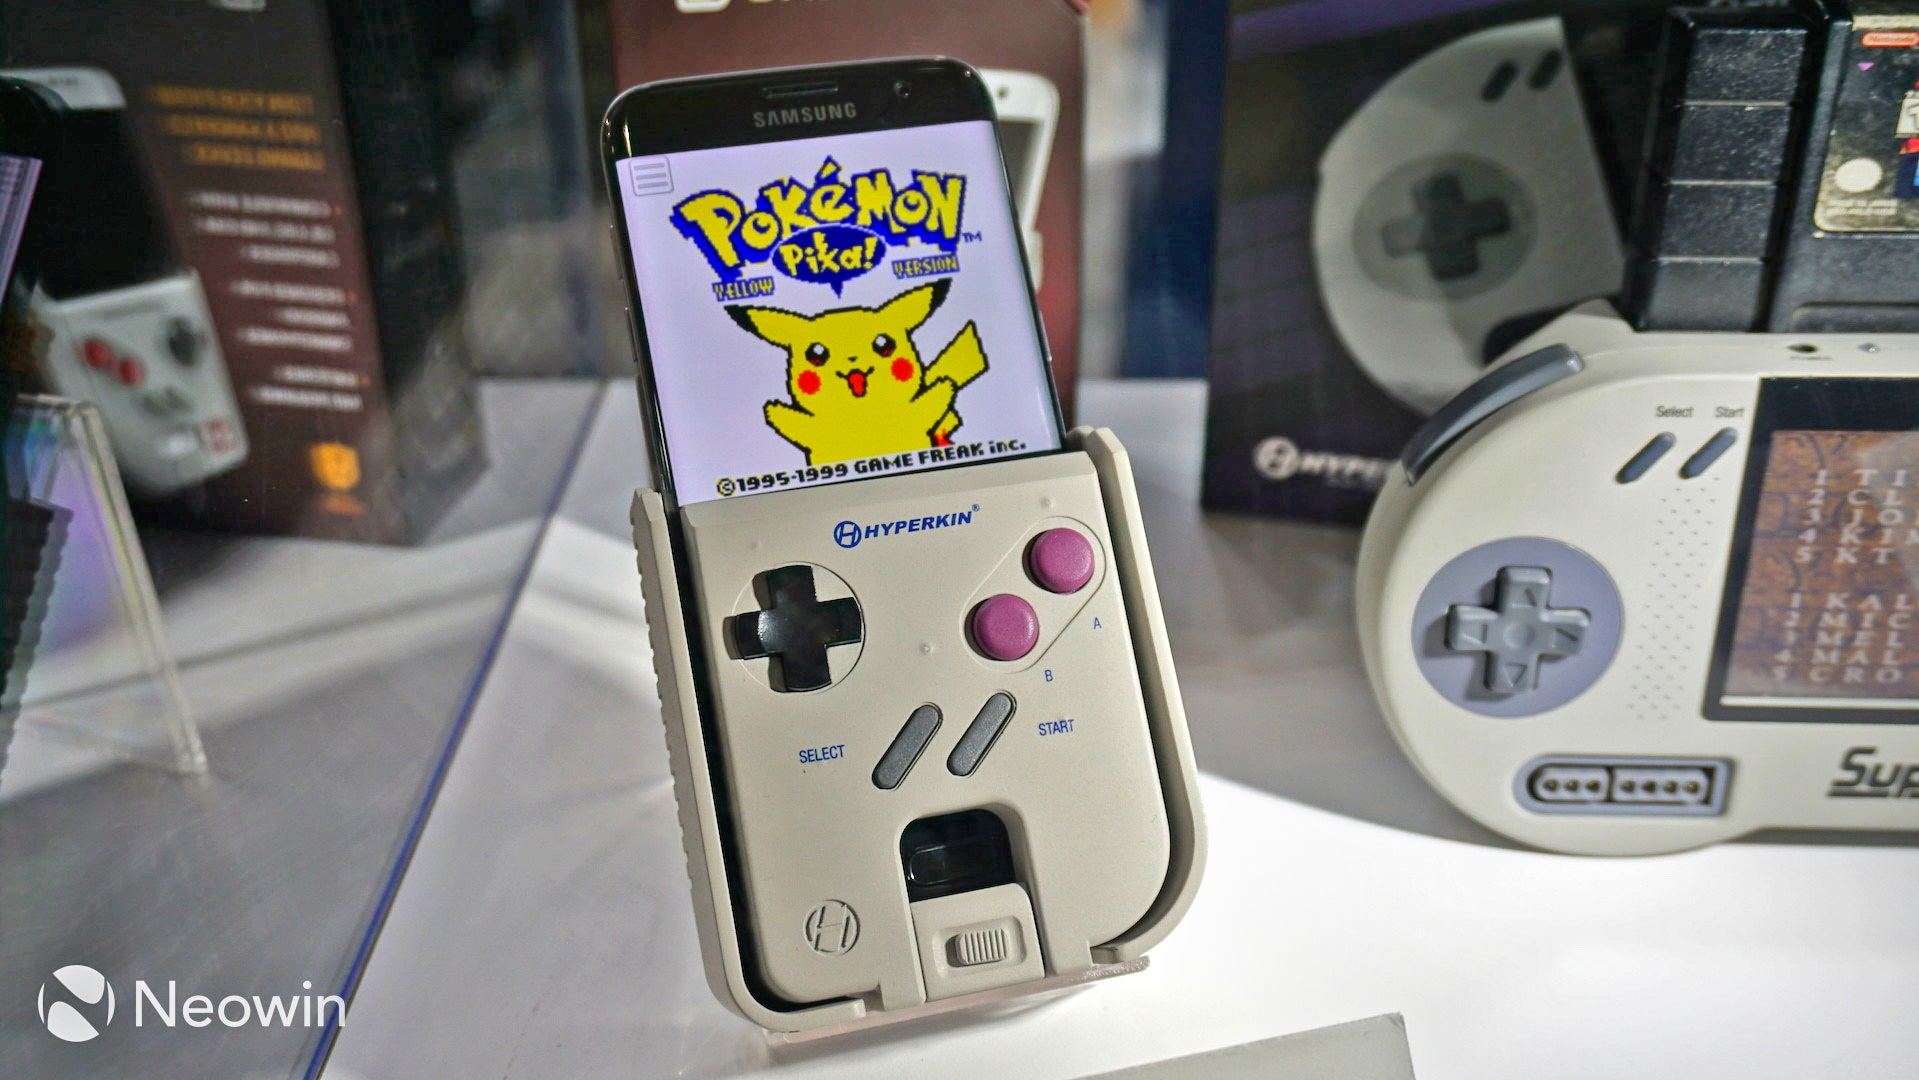 The Case That Turns Your Smartphone Into A Game Boy Was Shown Working At E3